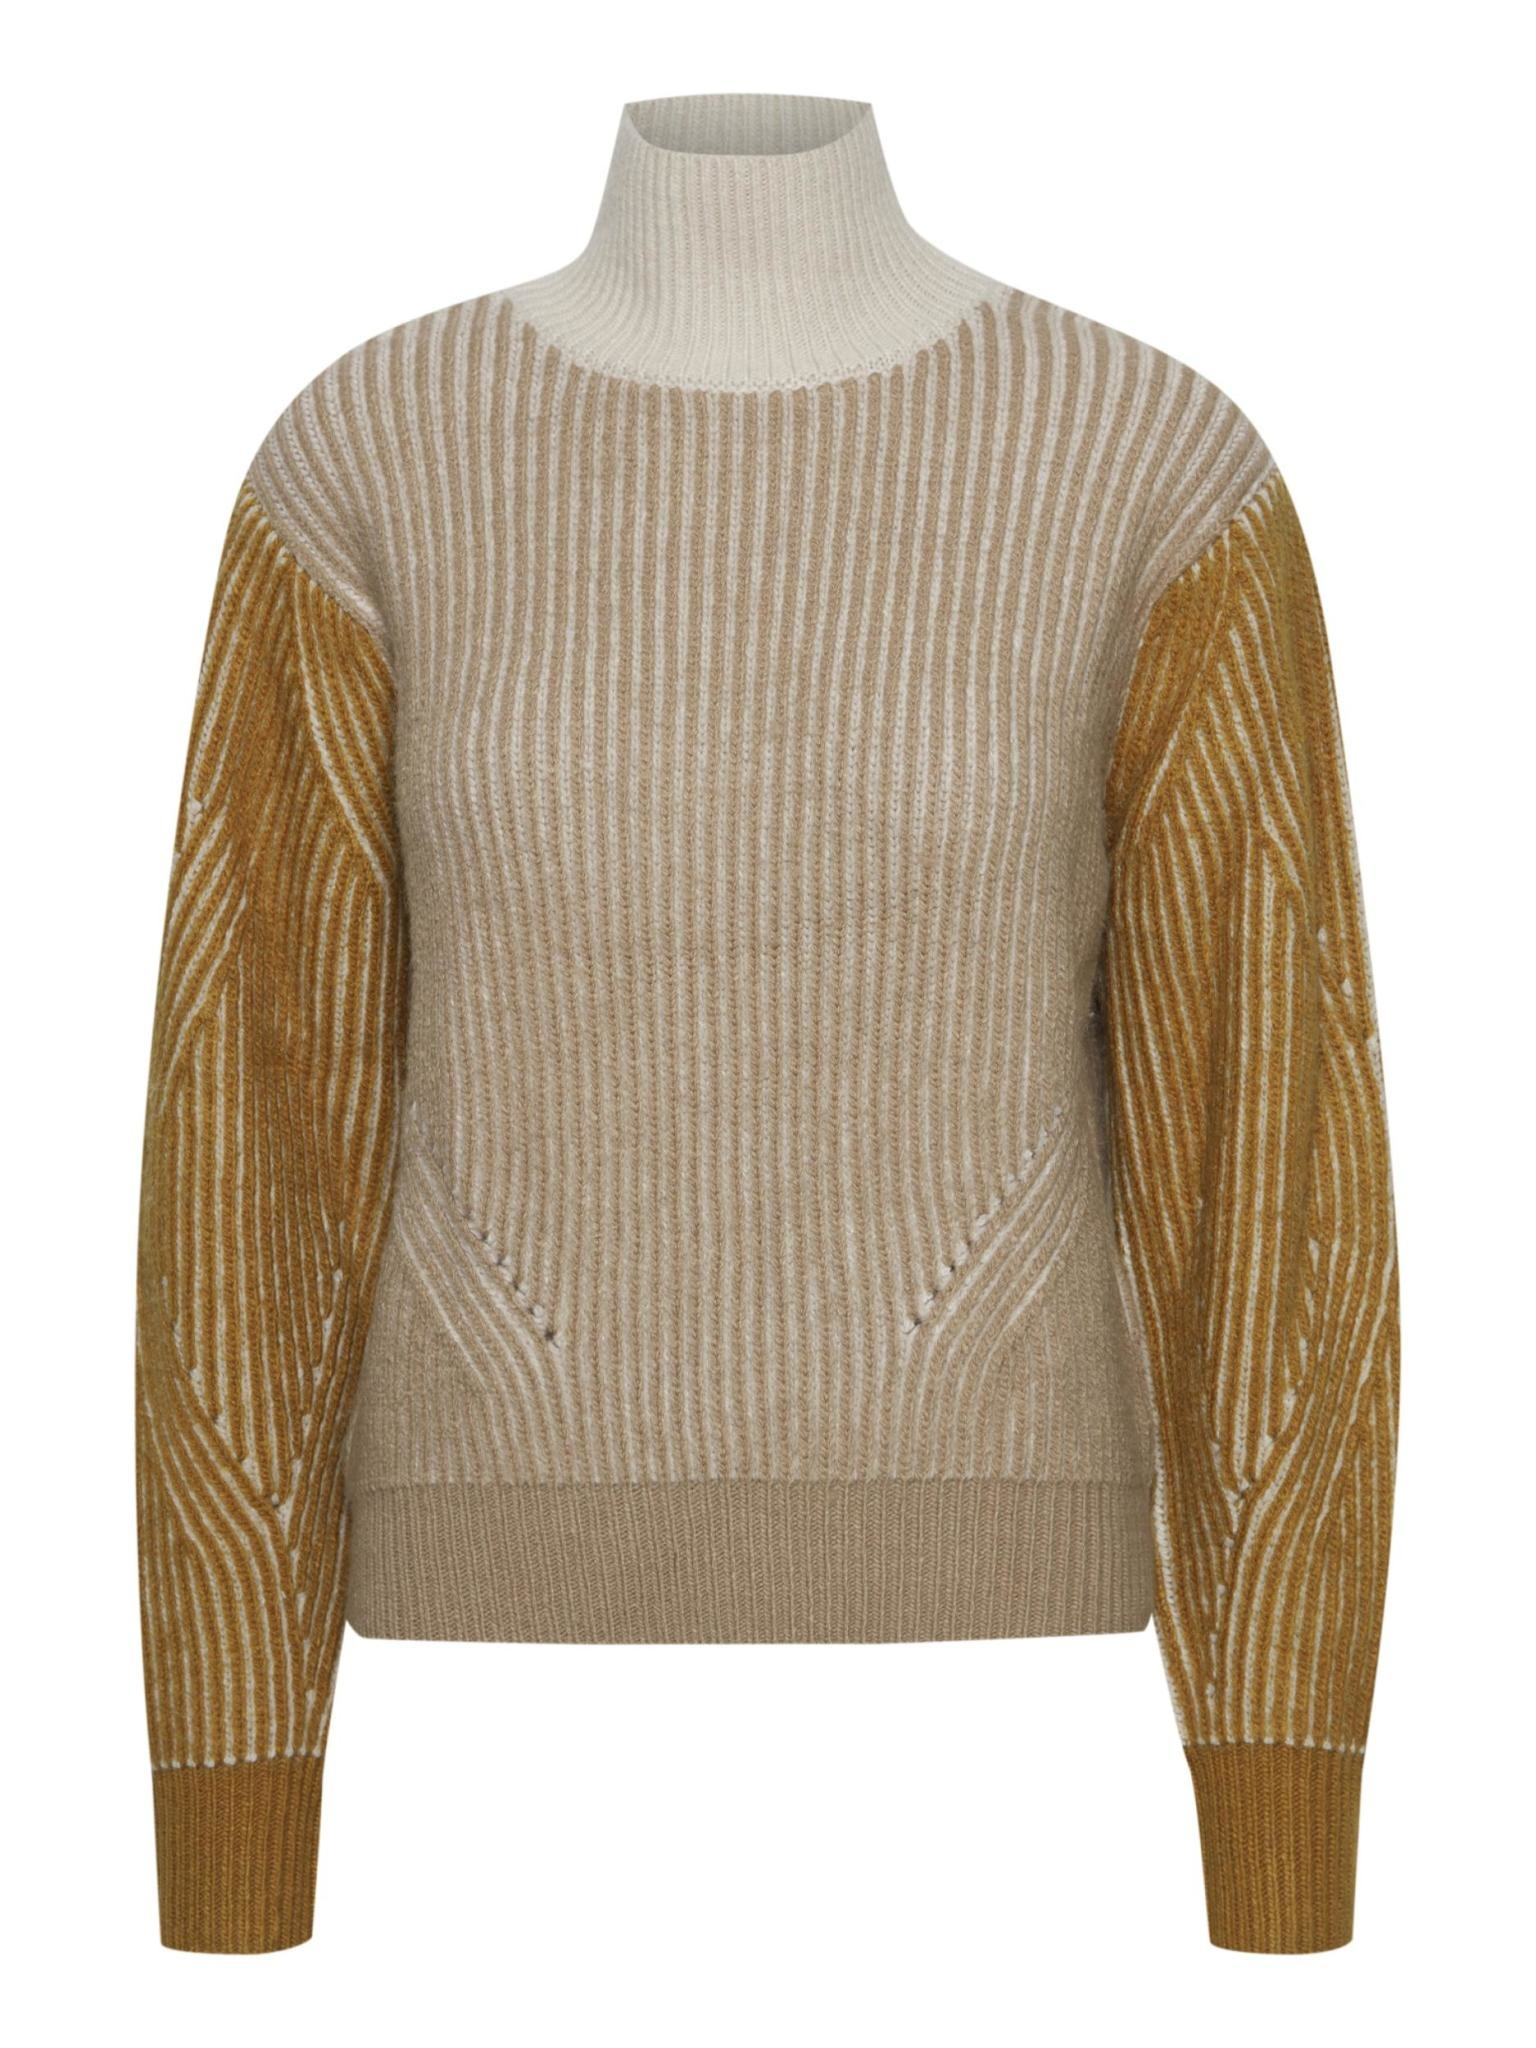 ICHI Maples Knitted Turtleneck Pullover